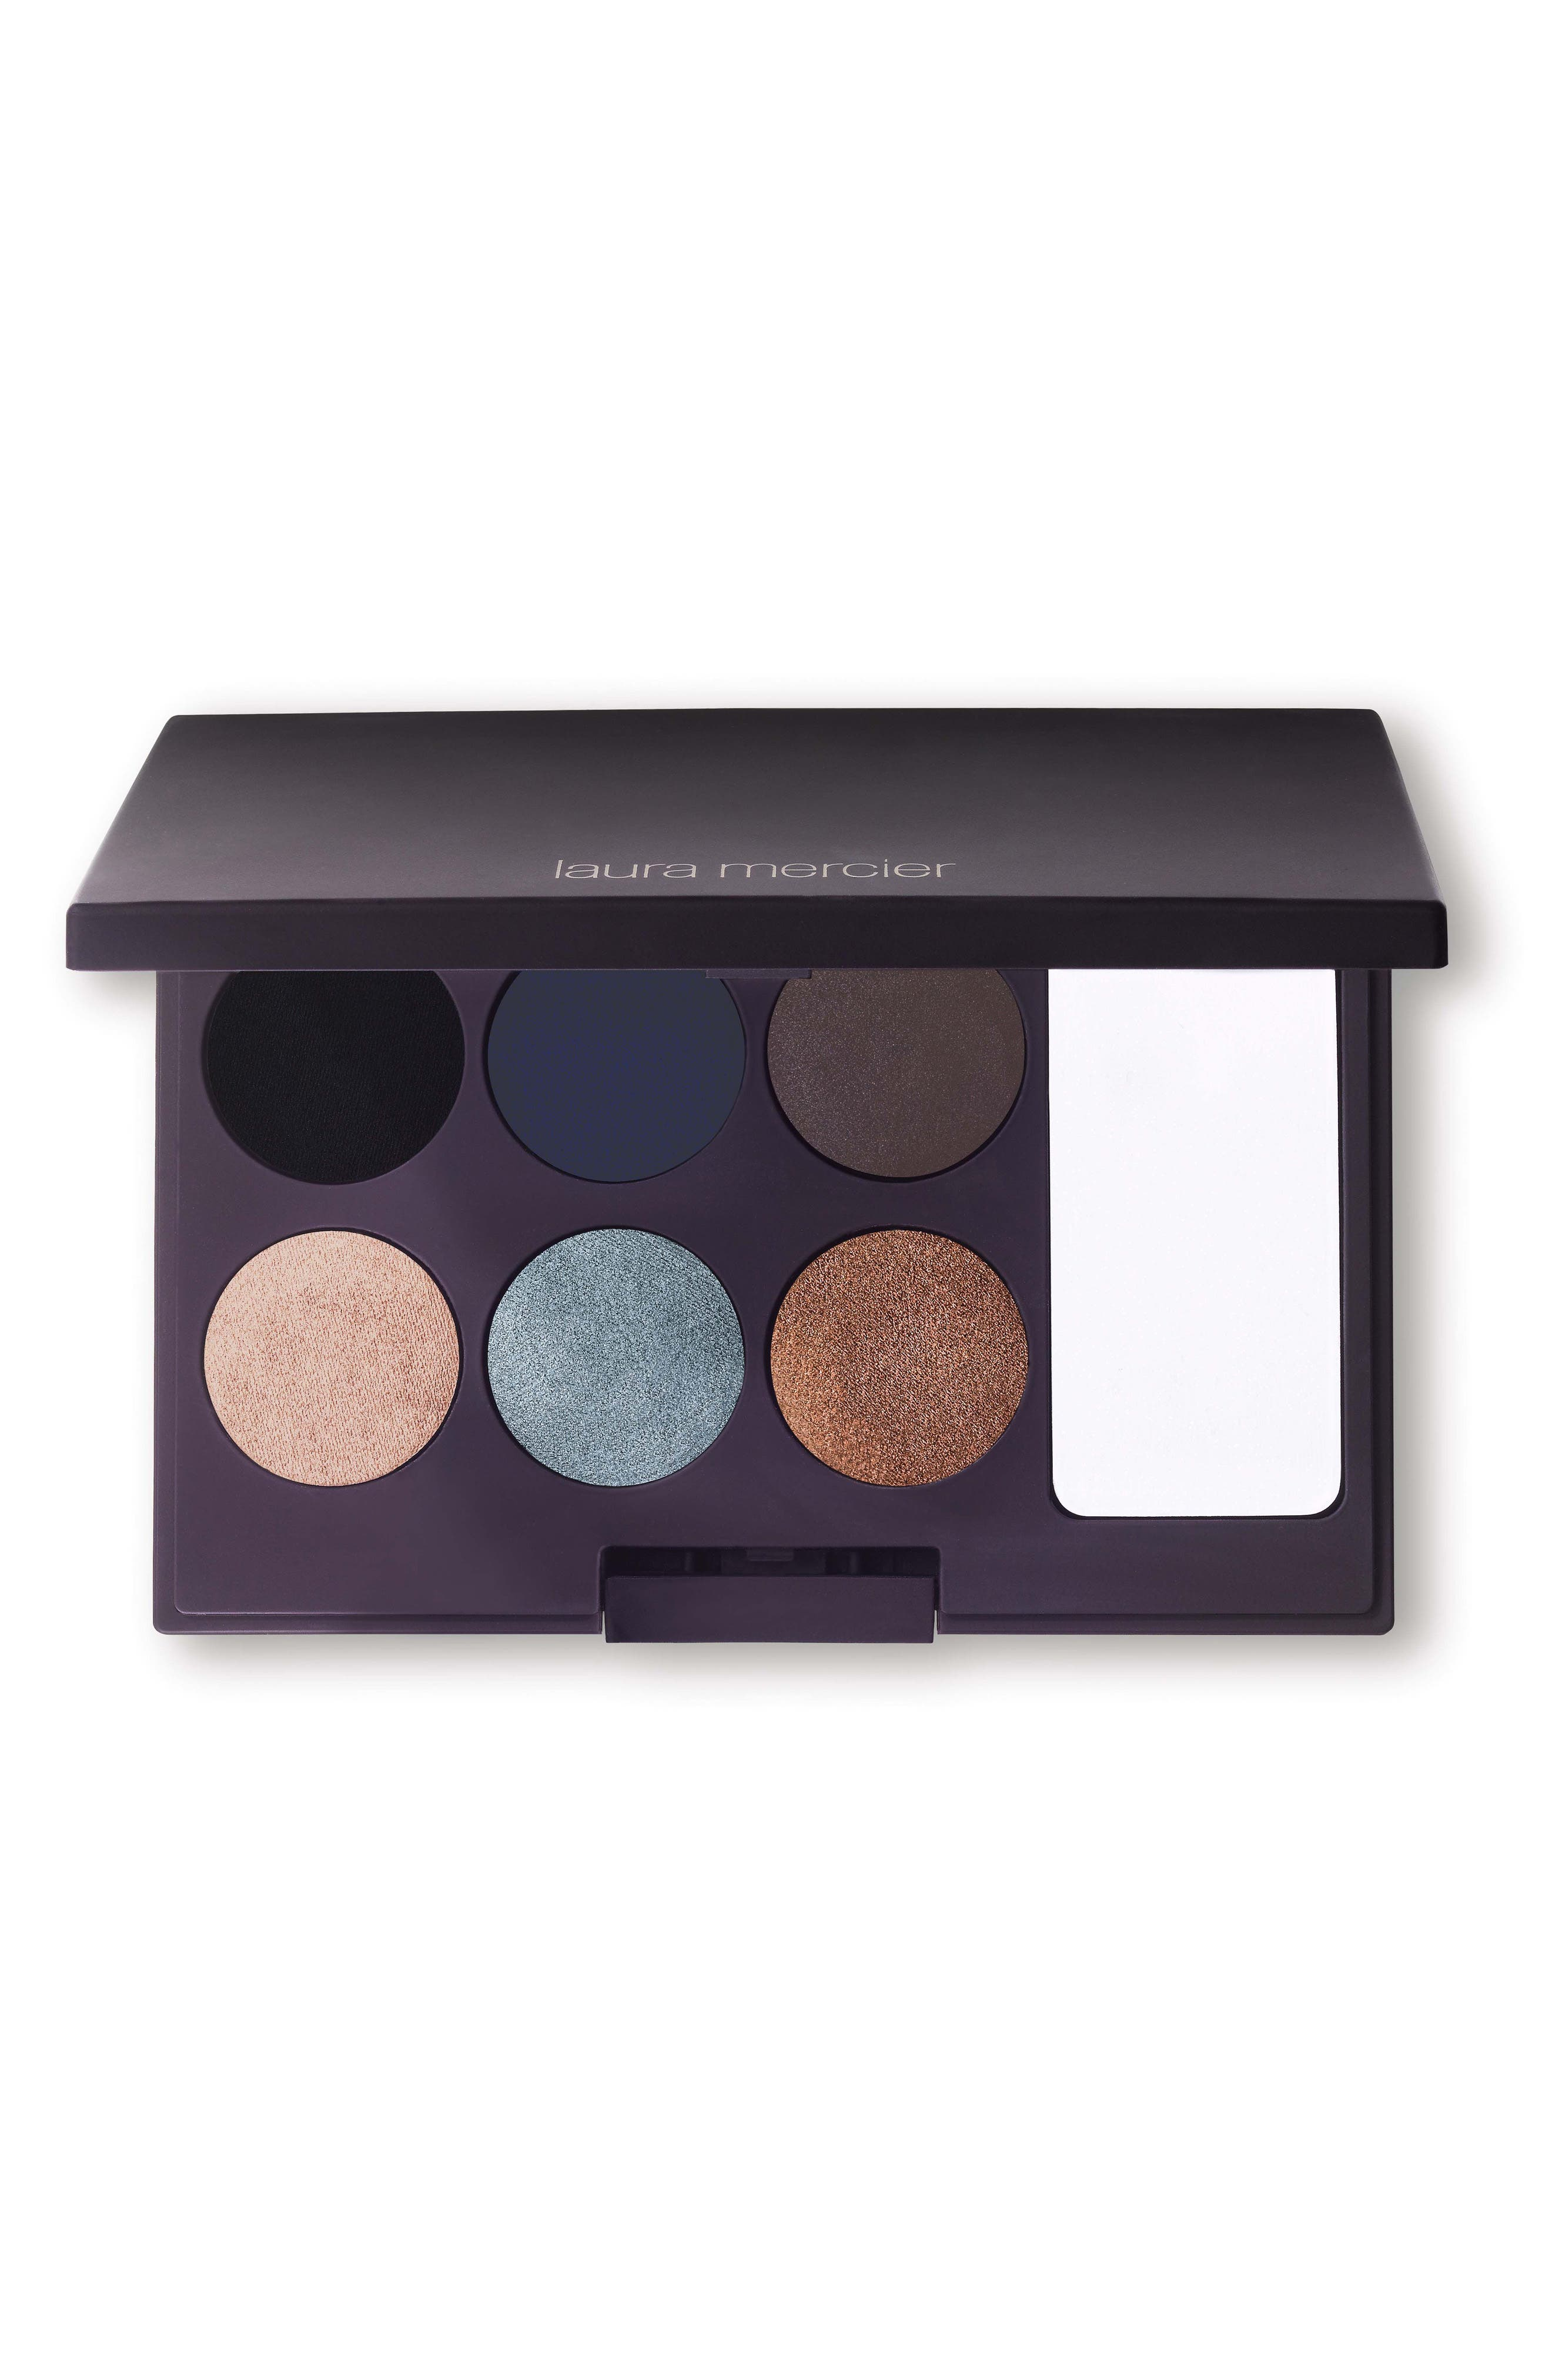 Intense Clays Editorial Eye Palette,                             Main thumbnail 1, color,                             NO COLOR